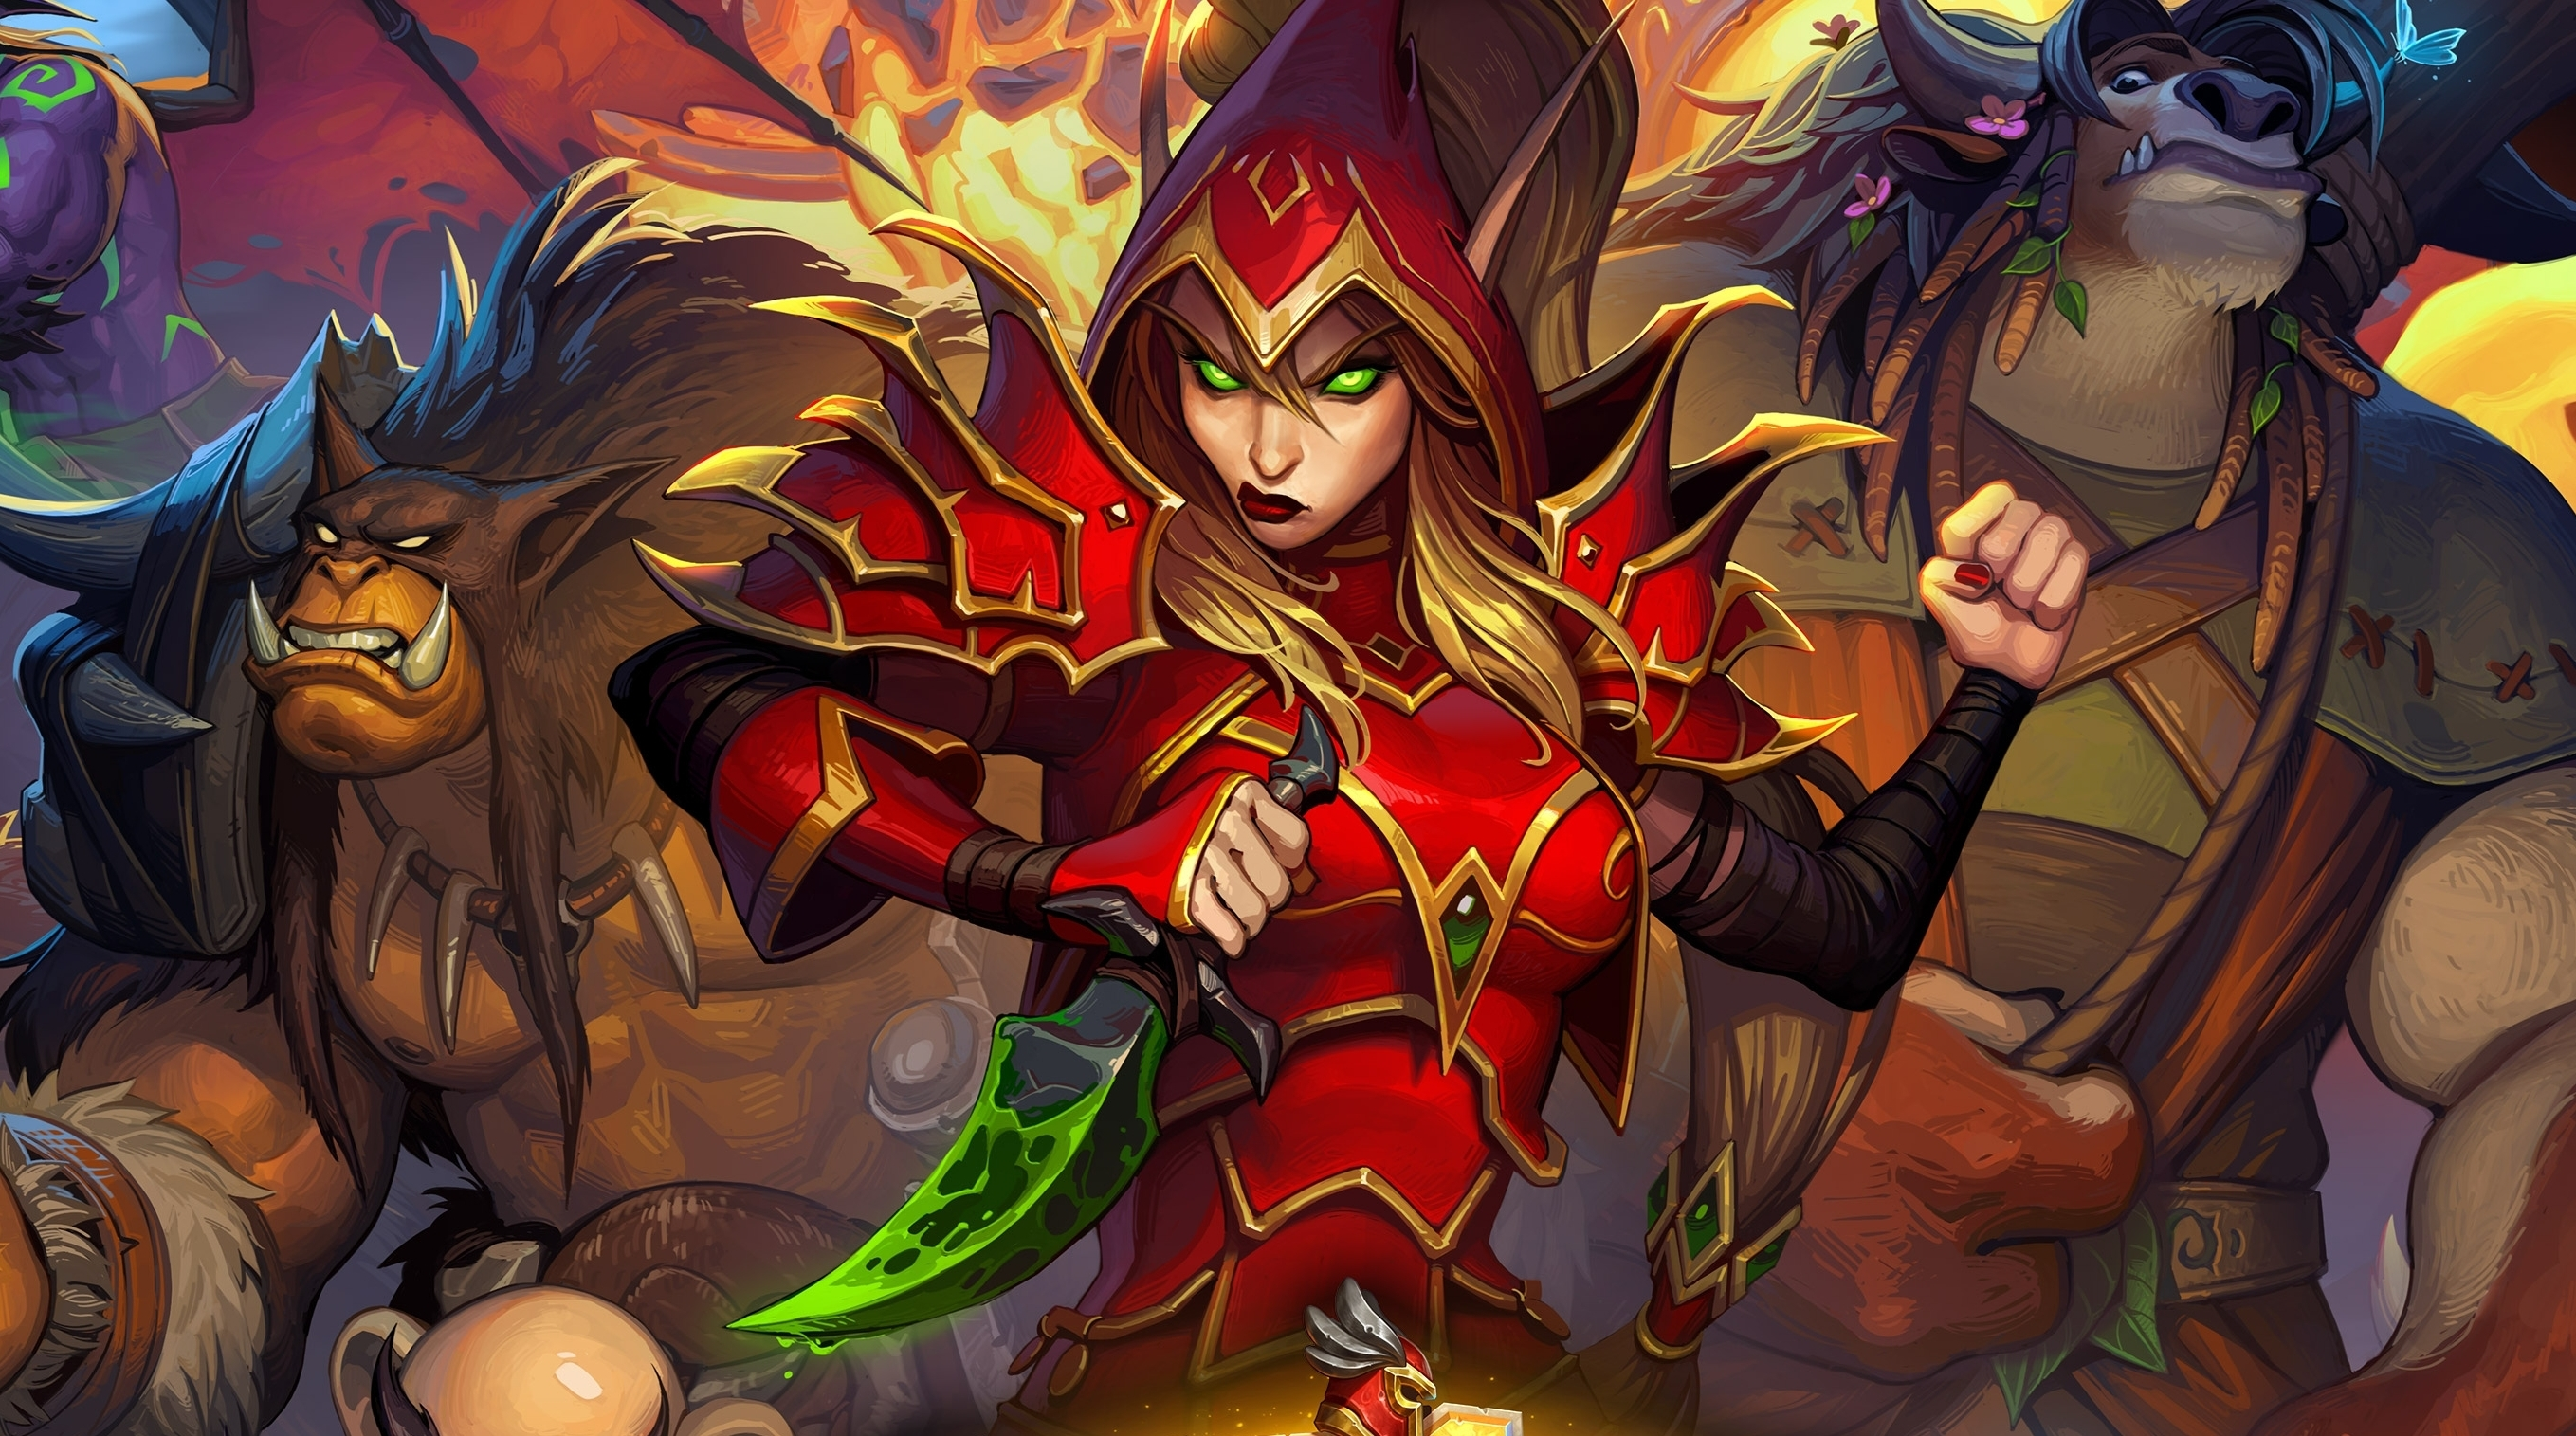 Hearthstone: the year of the Griffin arrives